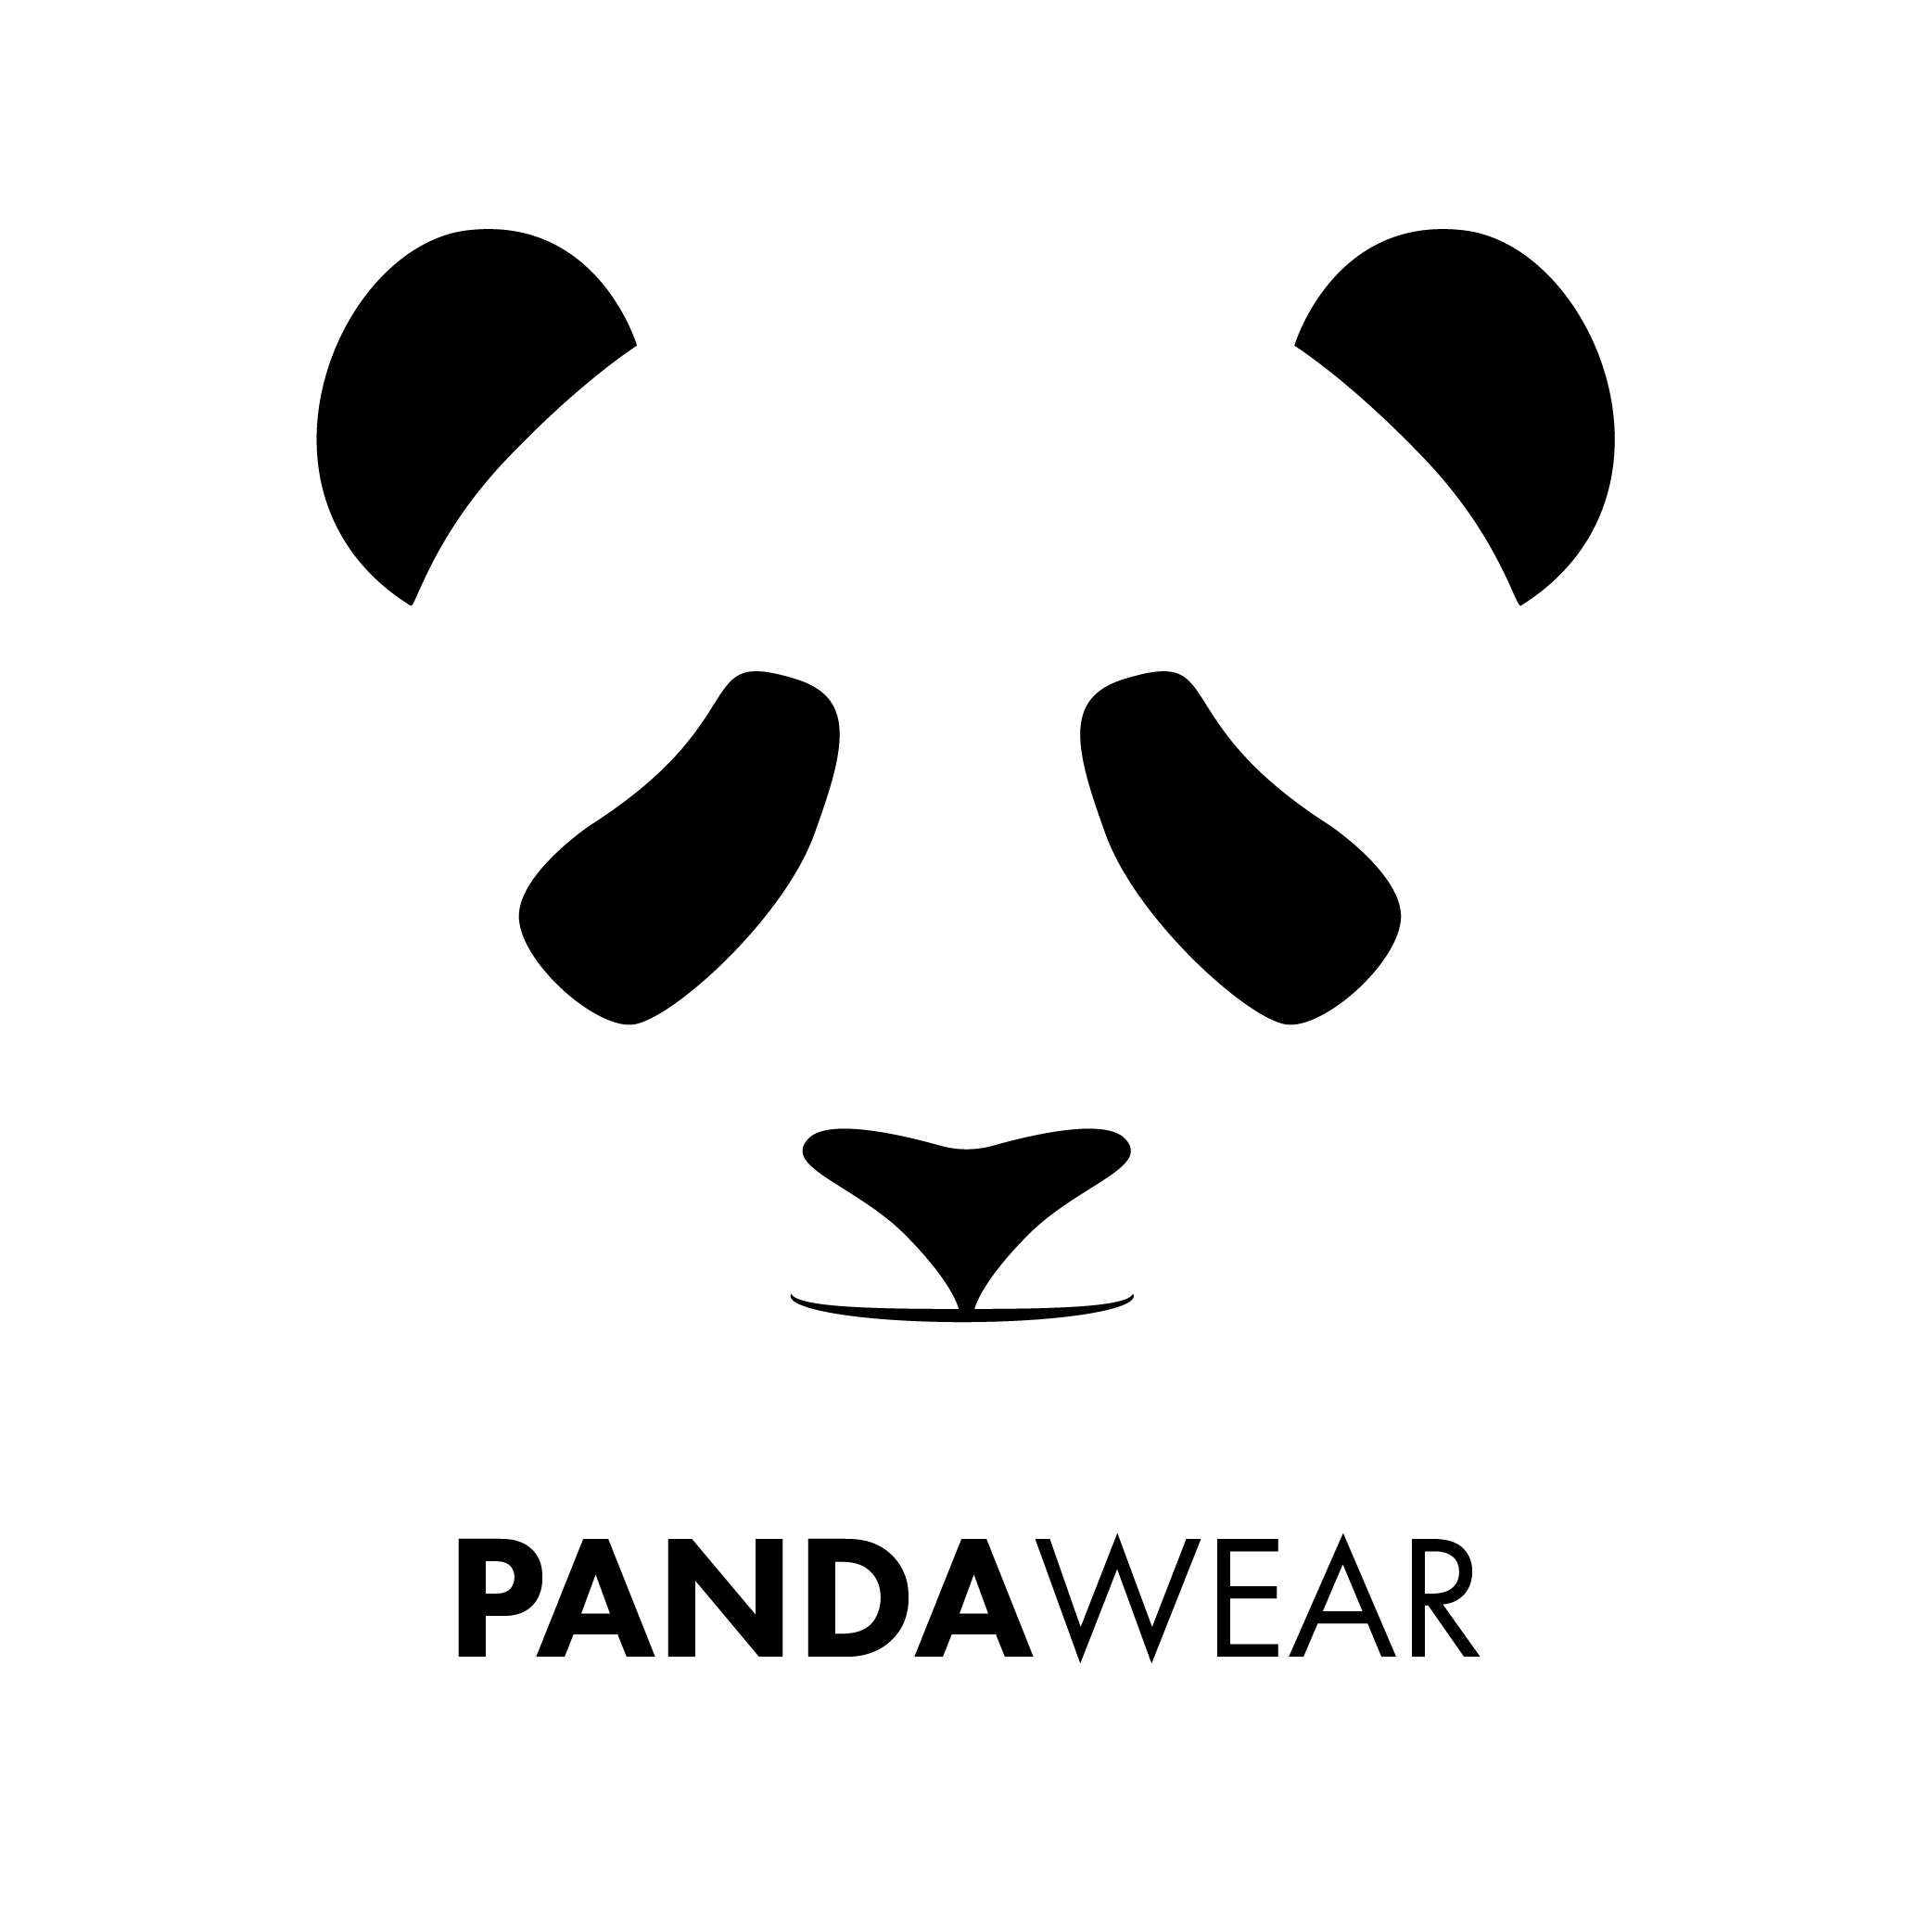 Panda Wear - PANDA WEAR IS OUR MAIN SOURCE OF INCOME IF YOU LIKE WHAT WE DO SUPPORT US BY WEARING OUR MERCH.Shop Now